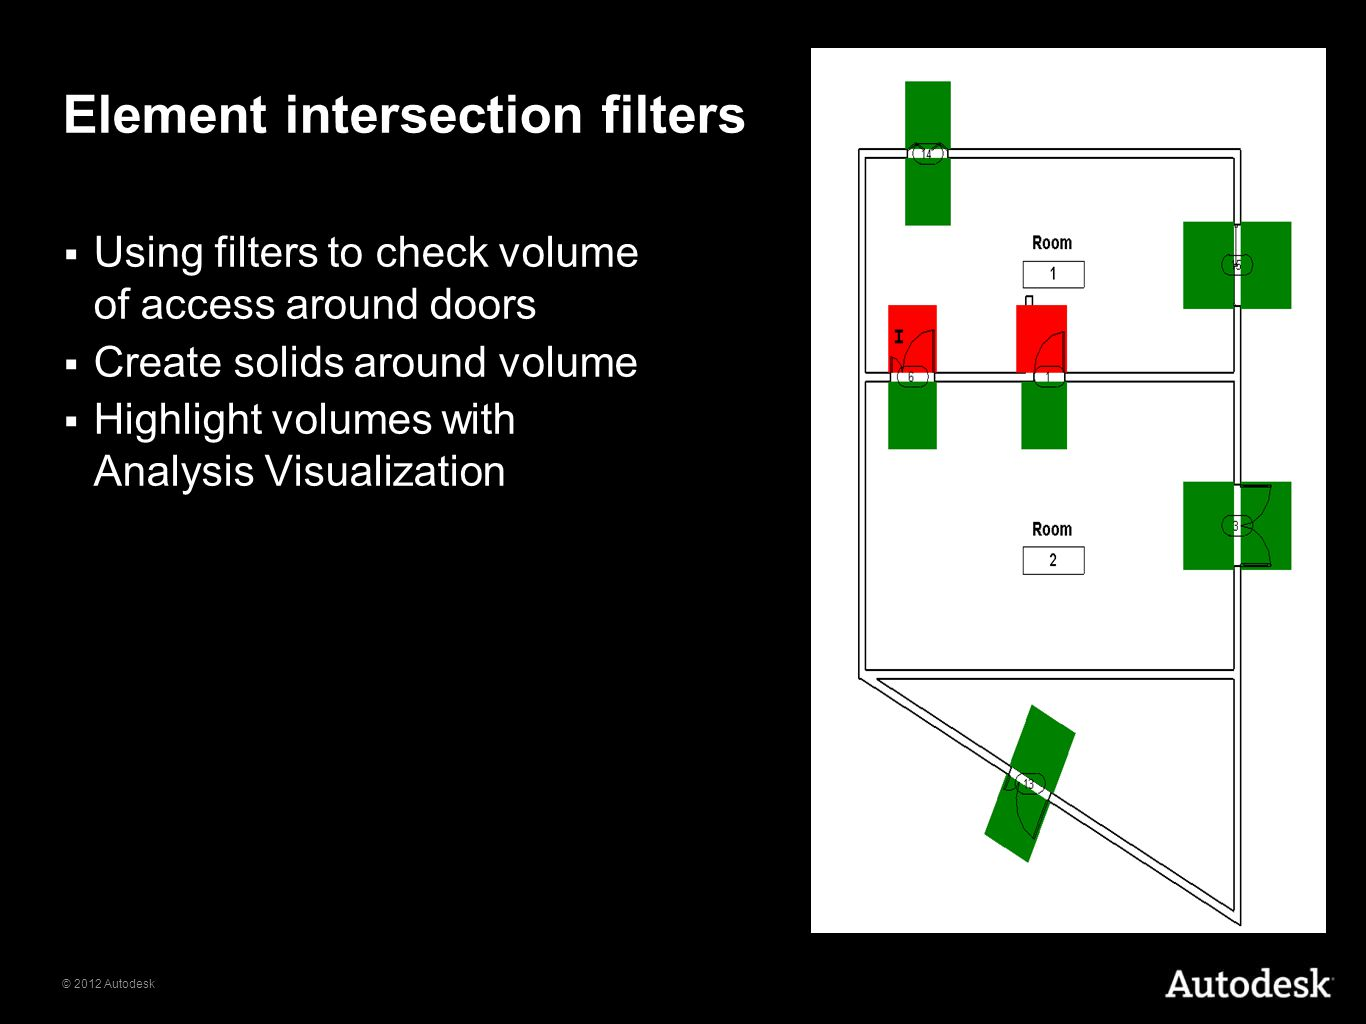 Element intersection filters